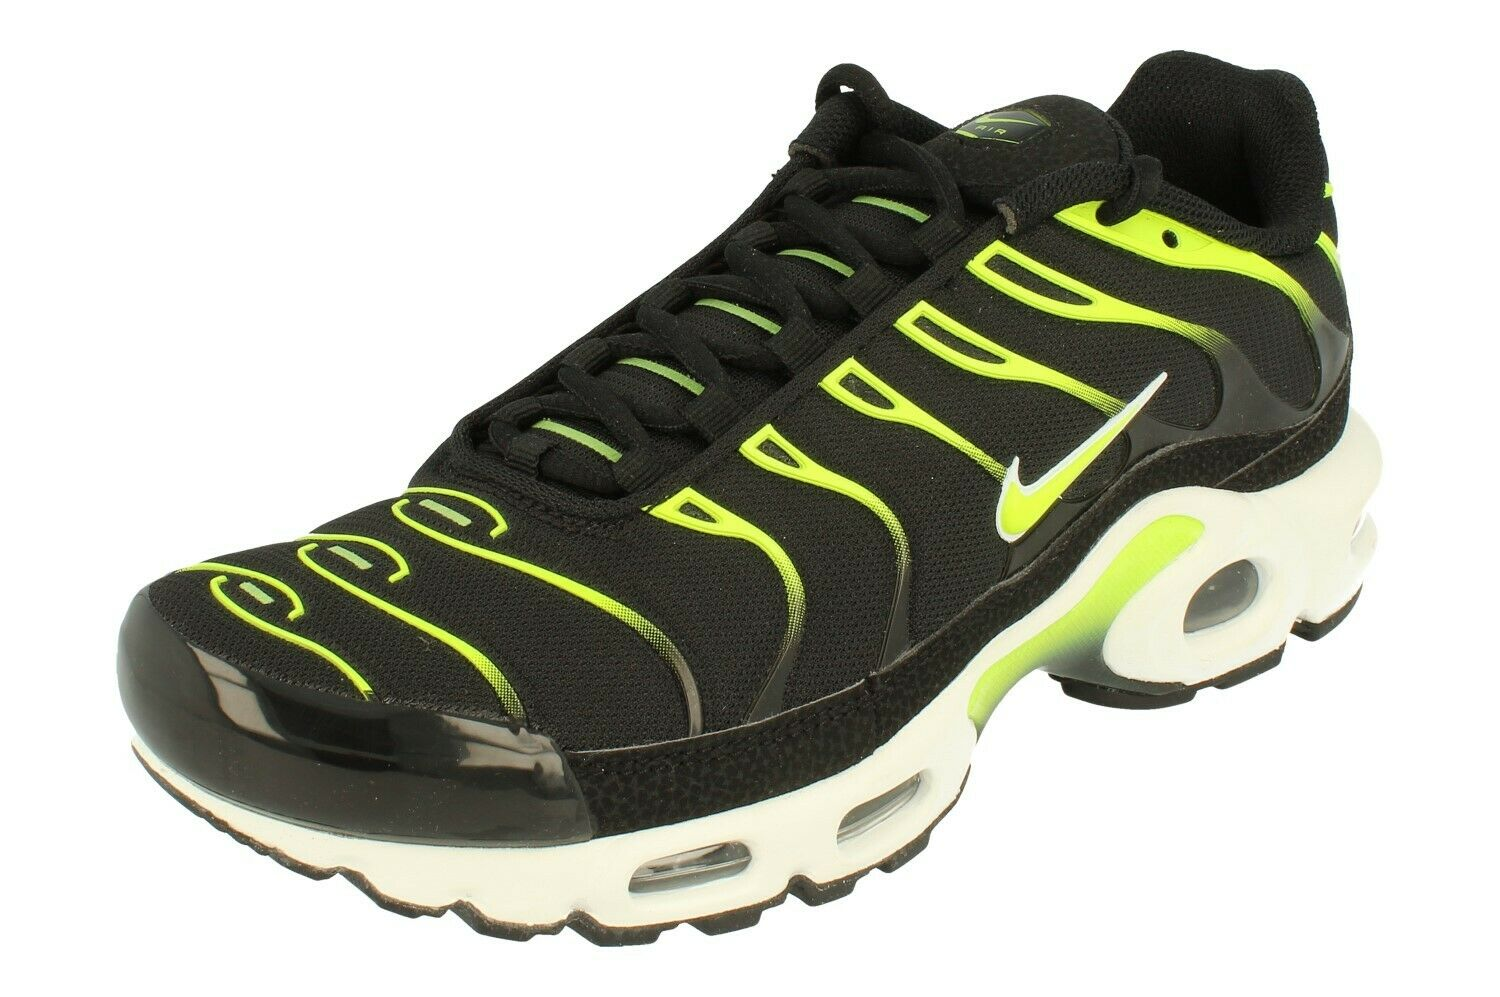 Nike Air Max Plus Mens Running Trainers 852630 Sneakers shoes 037